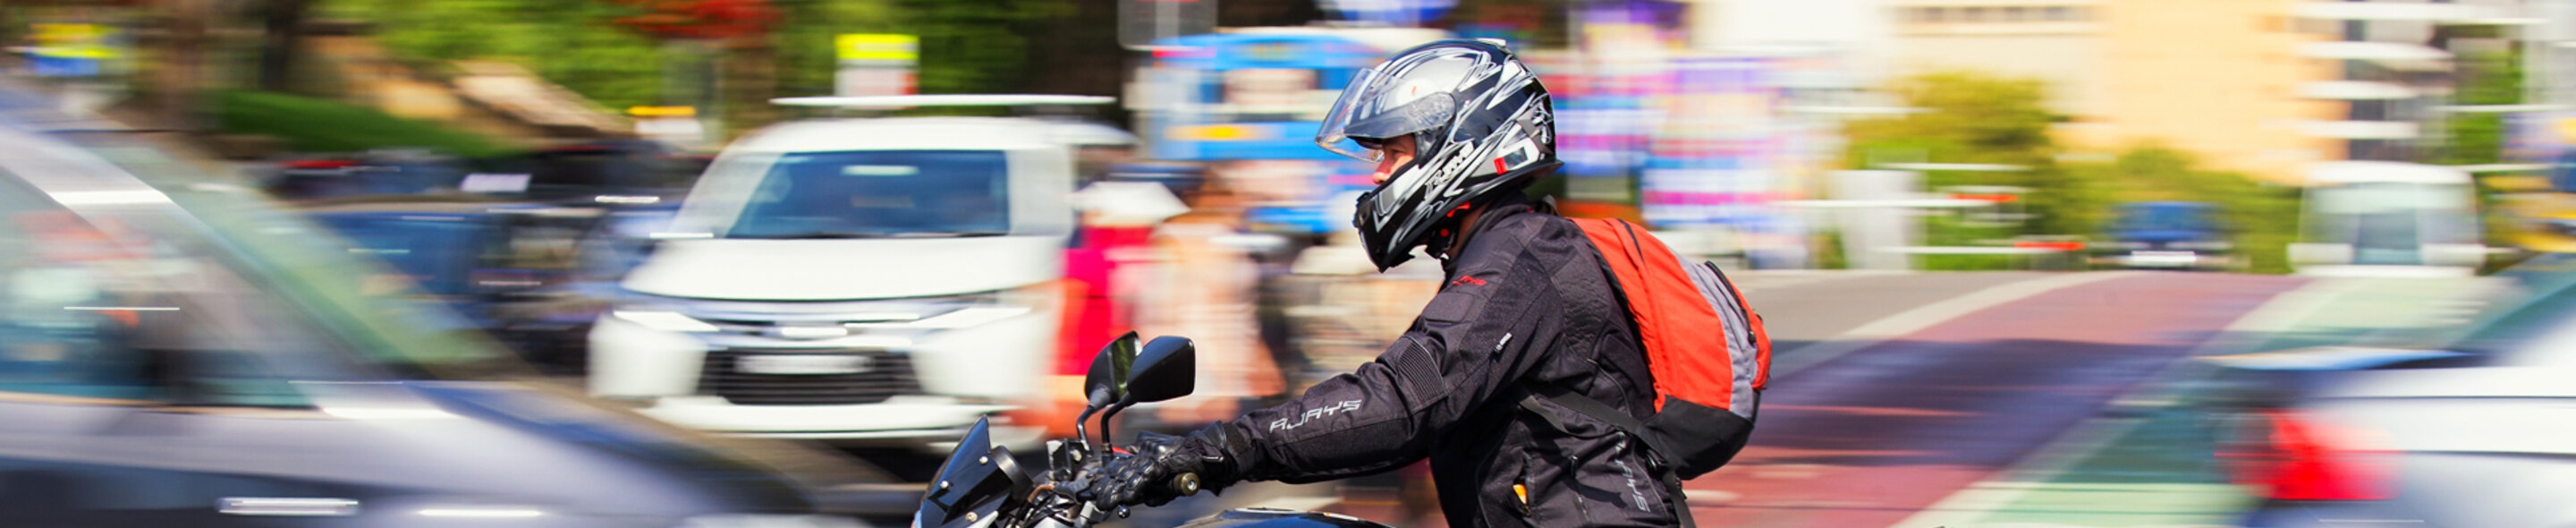 Motorcycle rider